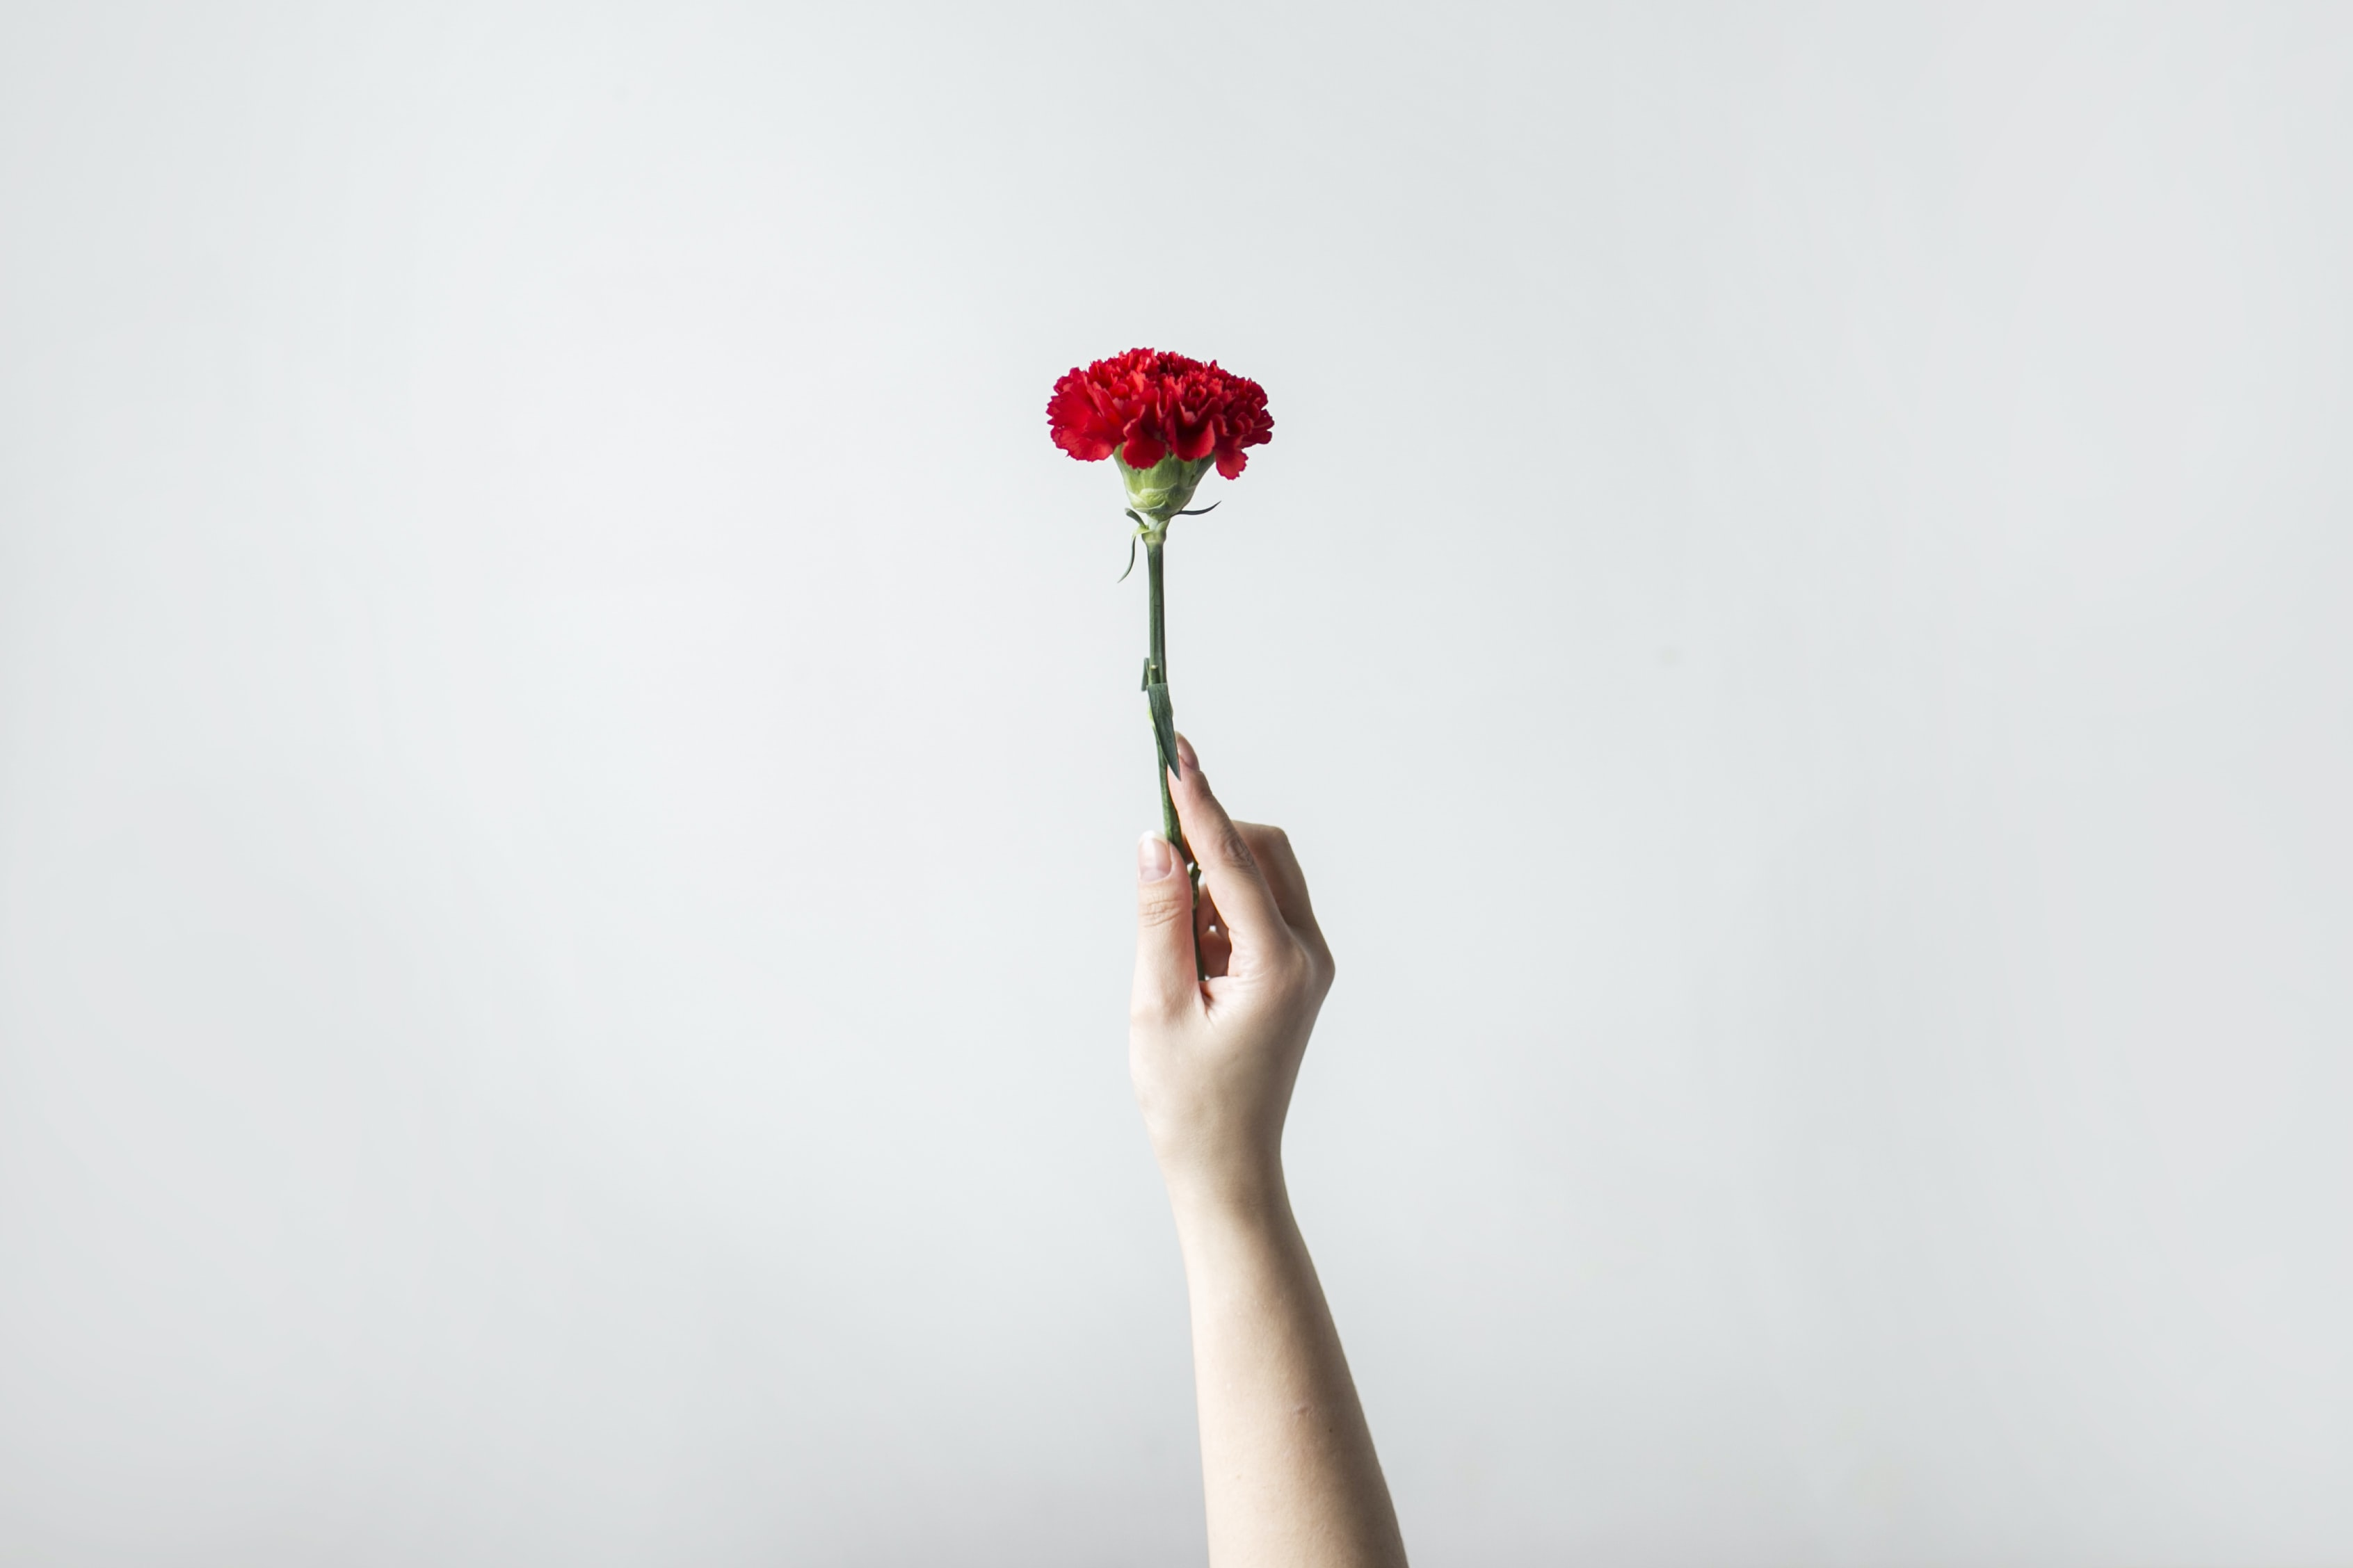 right person's hand holding flower